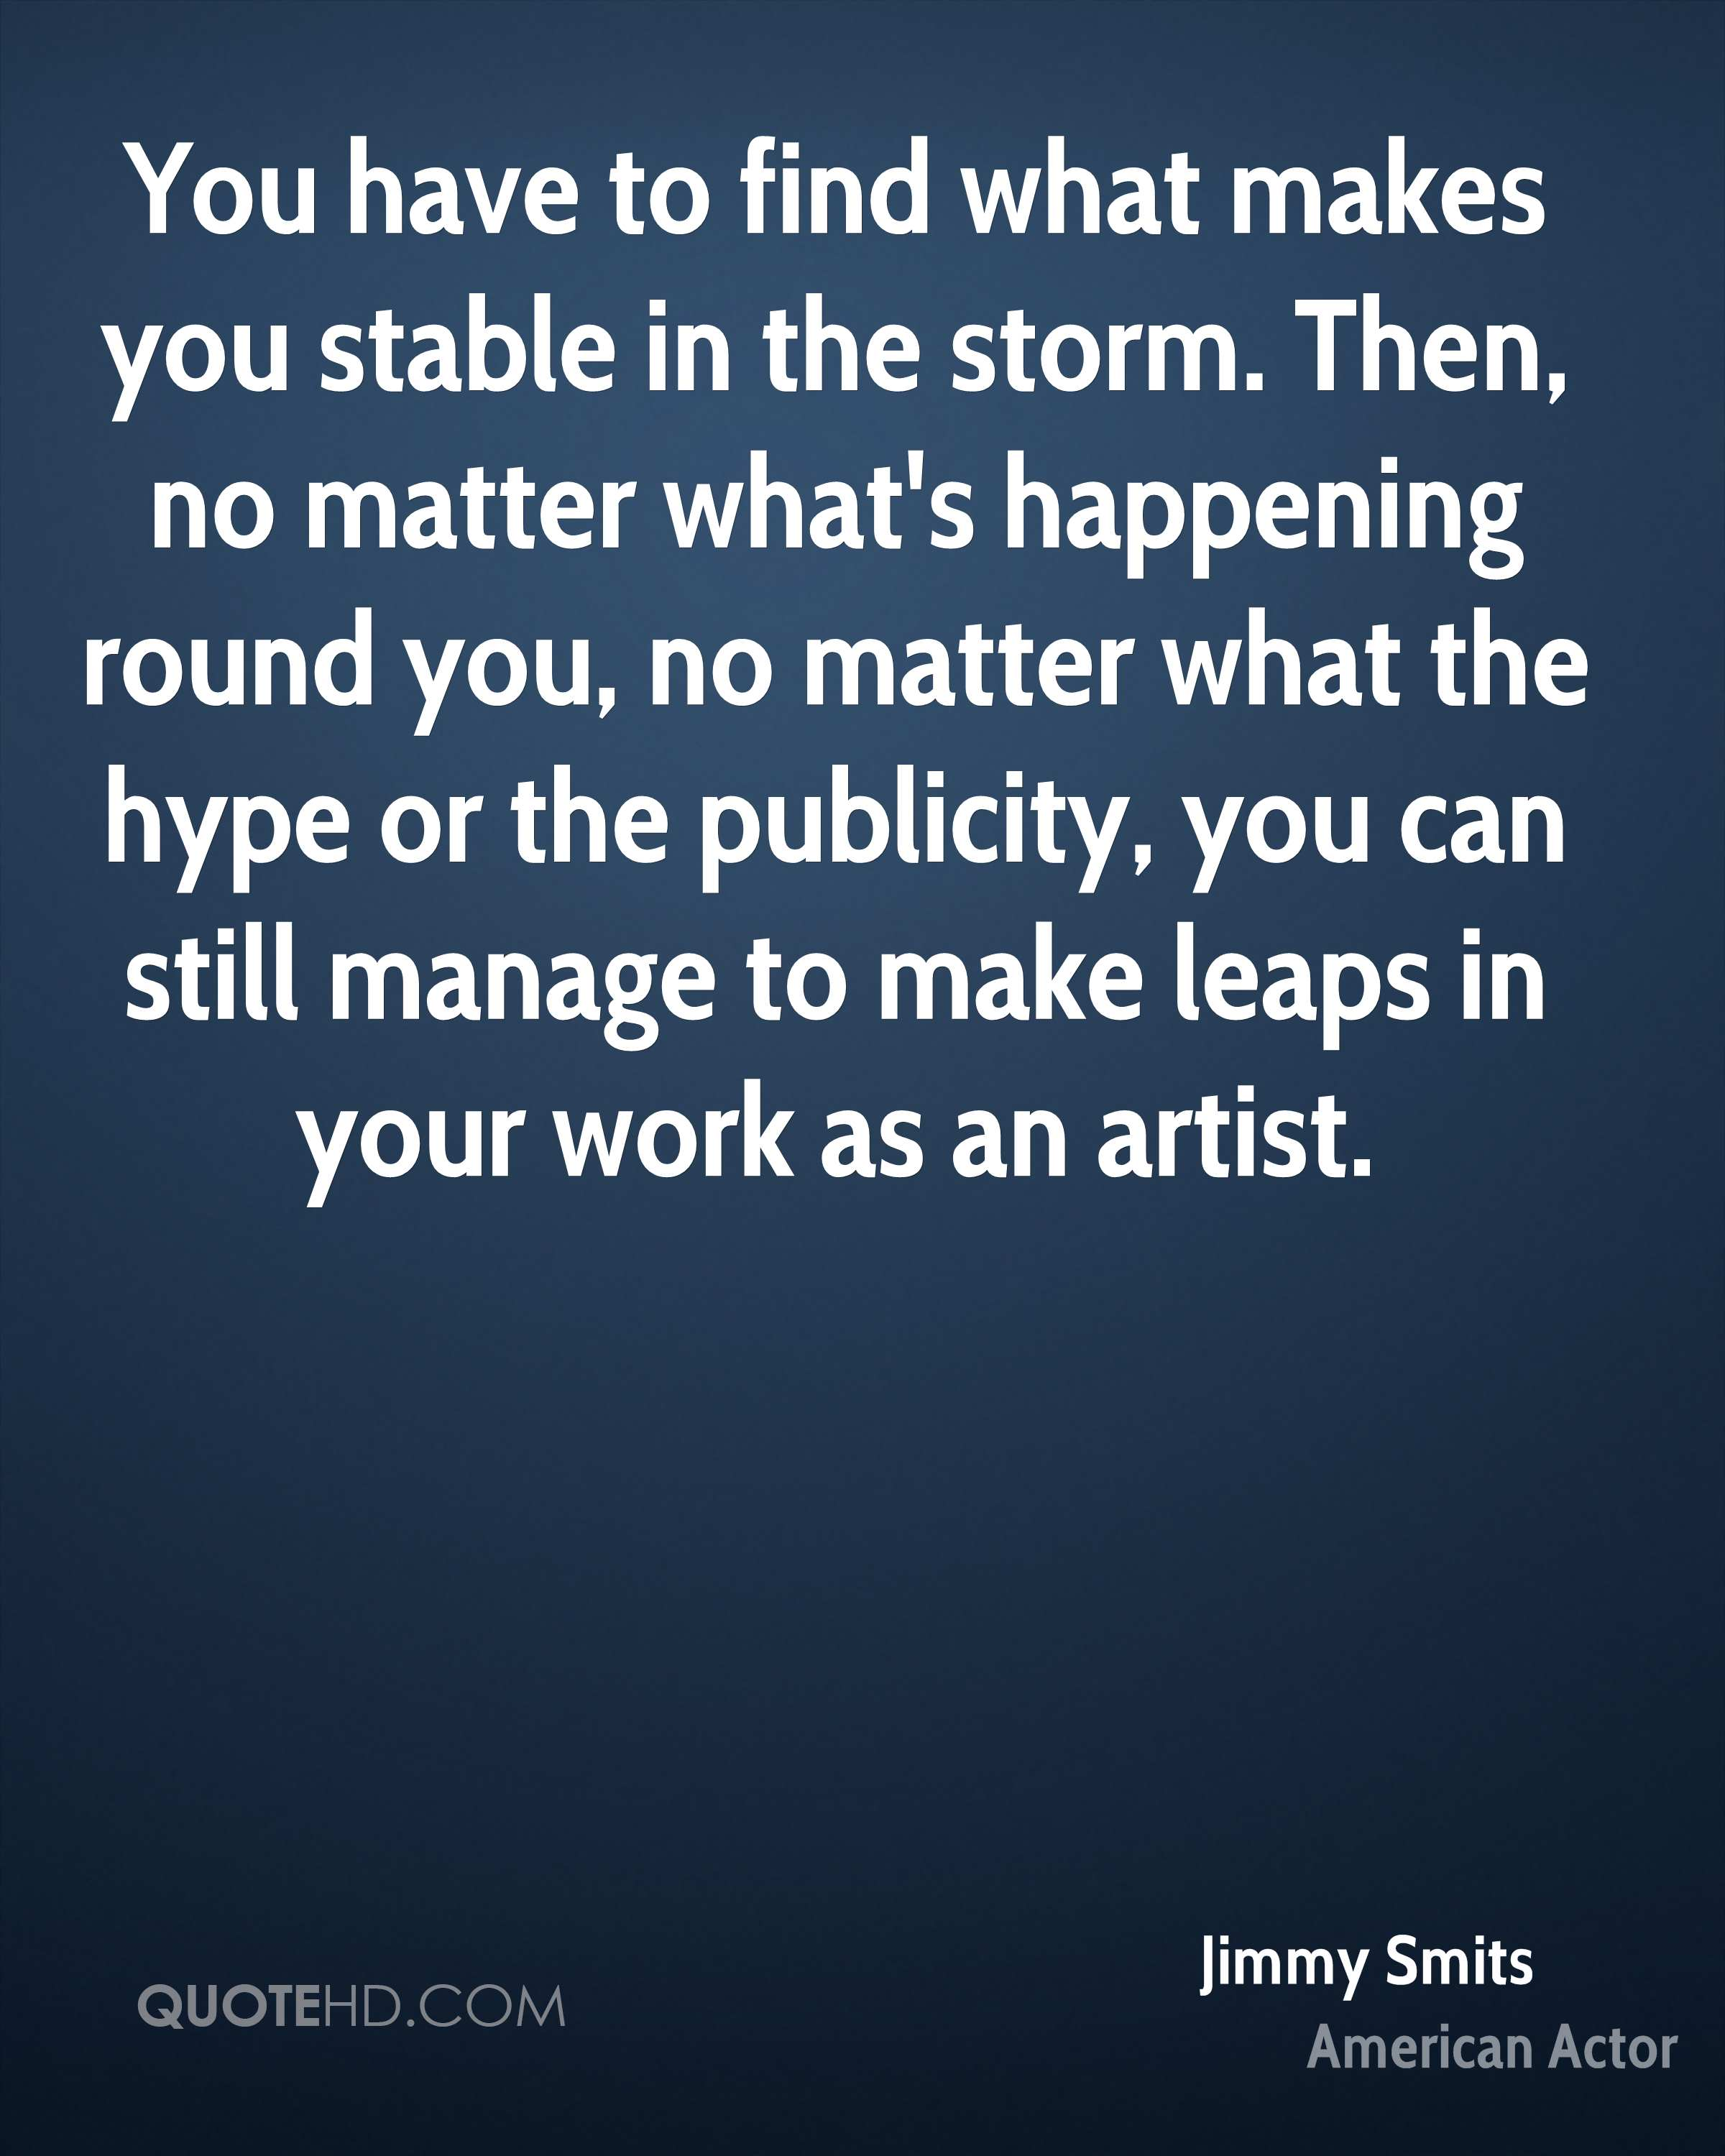 You have to find what makes you stable in the storm. Then, no matter what's happening round you, no matter what the hype or the publicity, you can still manage to make leaps in your work as an artist.